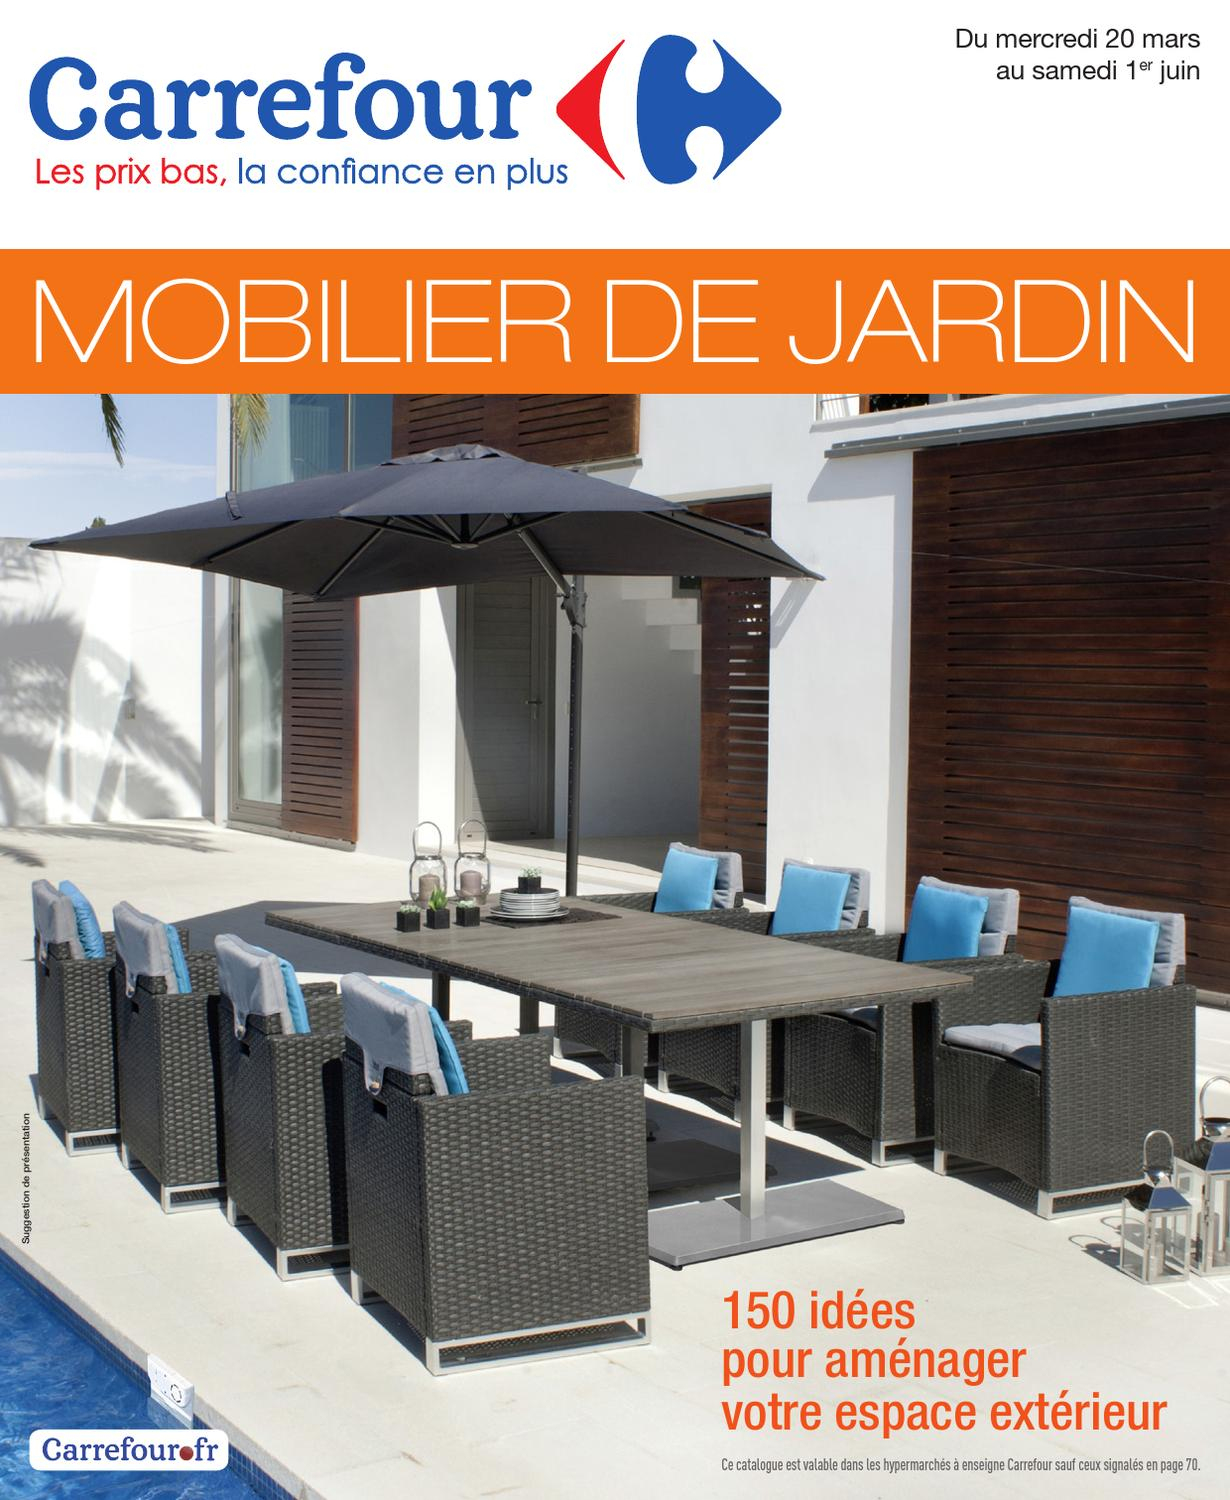 Carrefour_20.3-1.6-2013 By Proomo France - Issuu avec Table Vega Grosfillex Carrefour